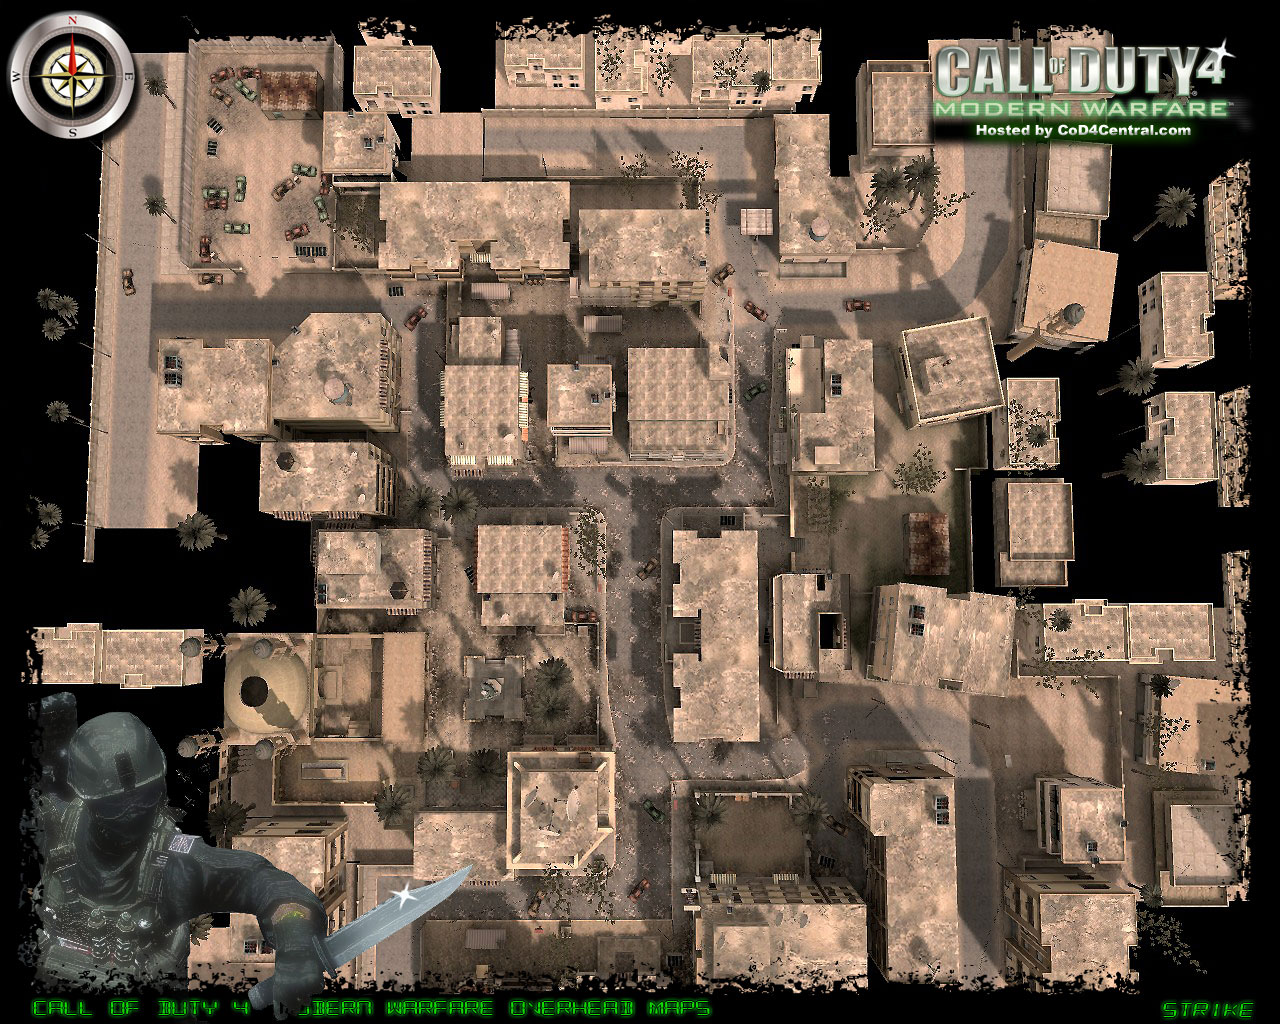 CoD4 Strike Ultra High Resolution Map Image